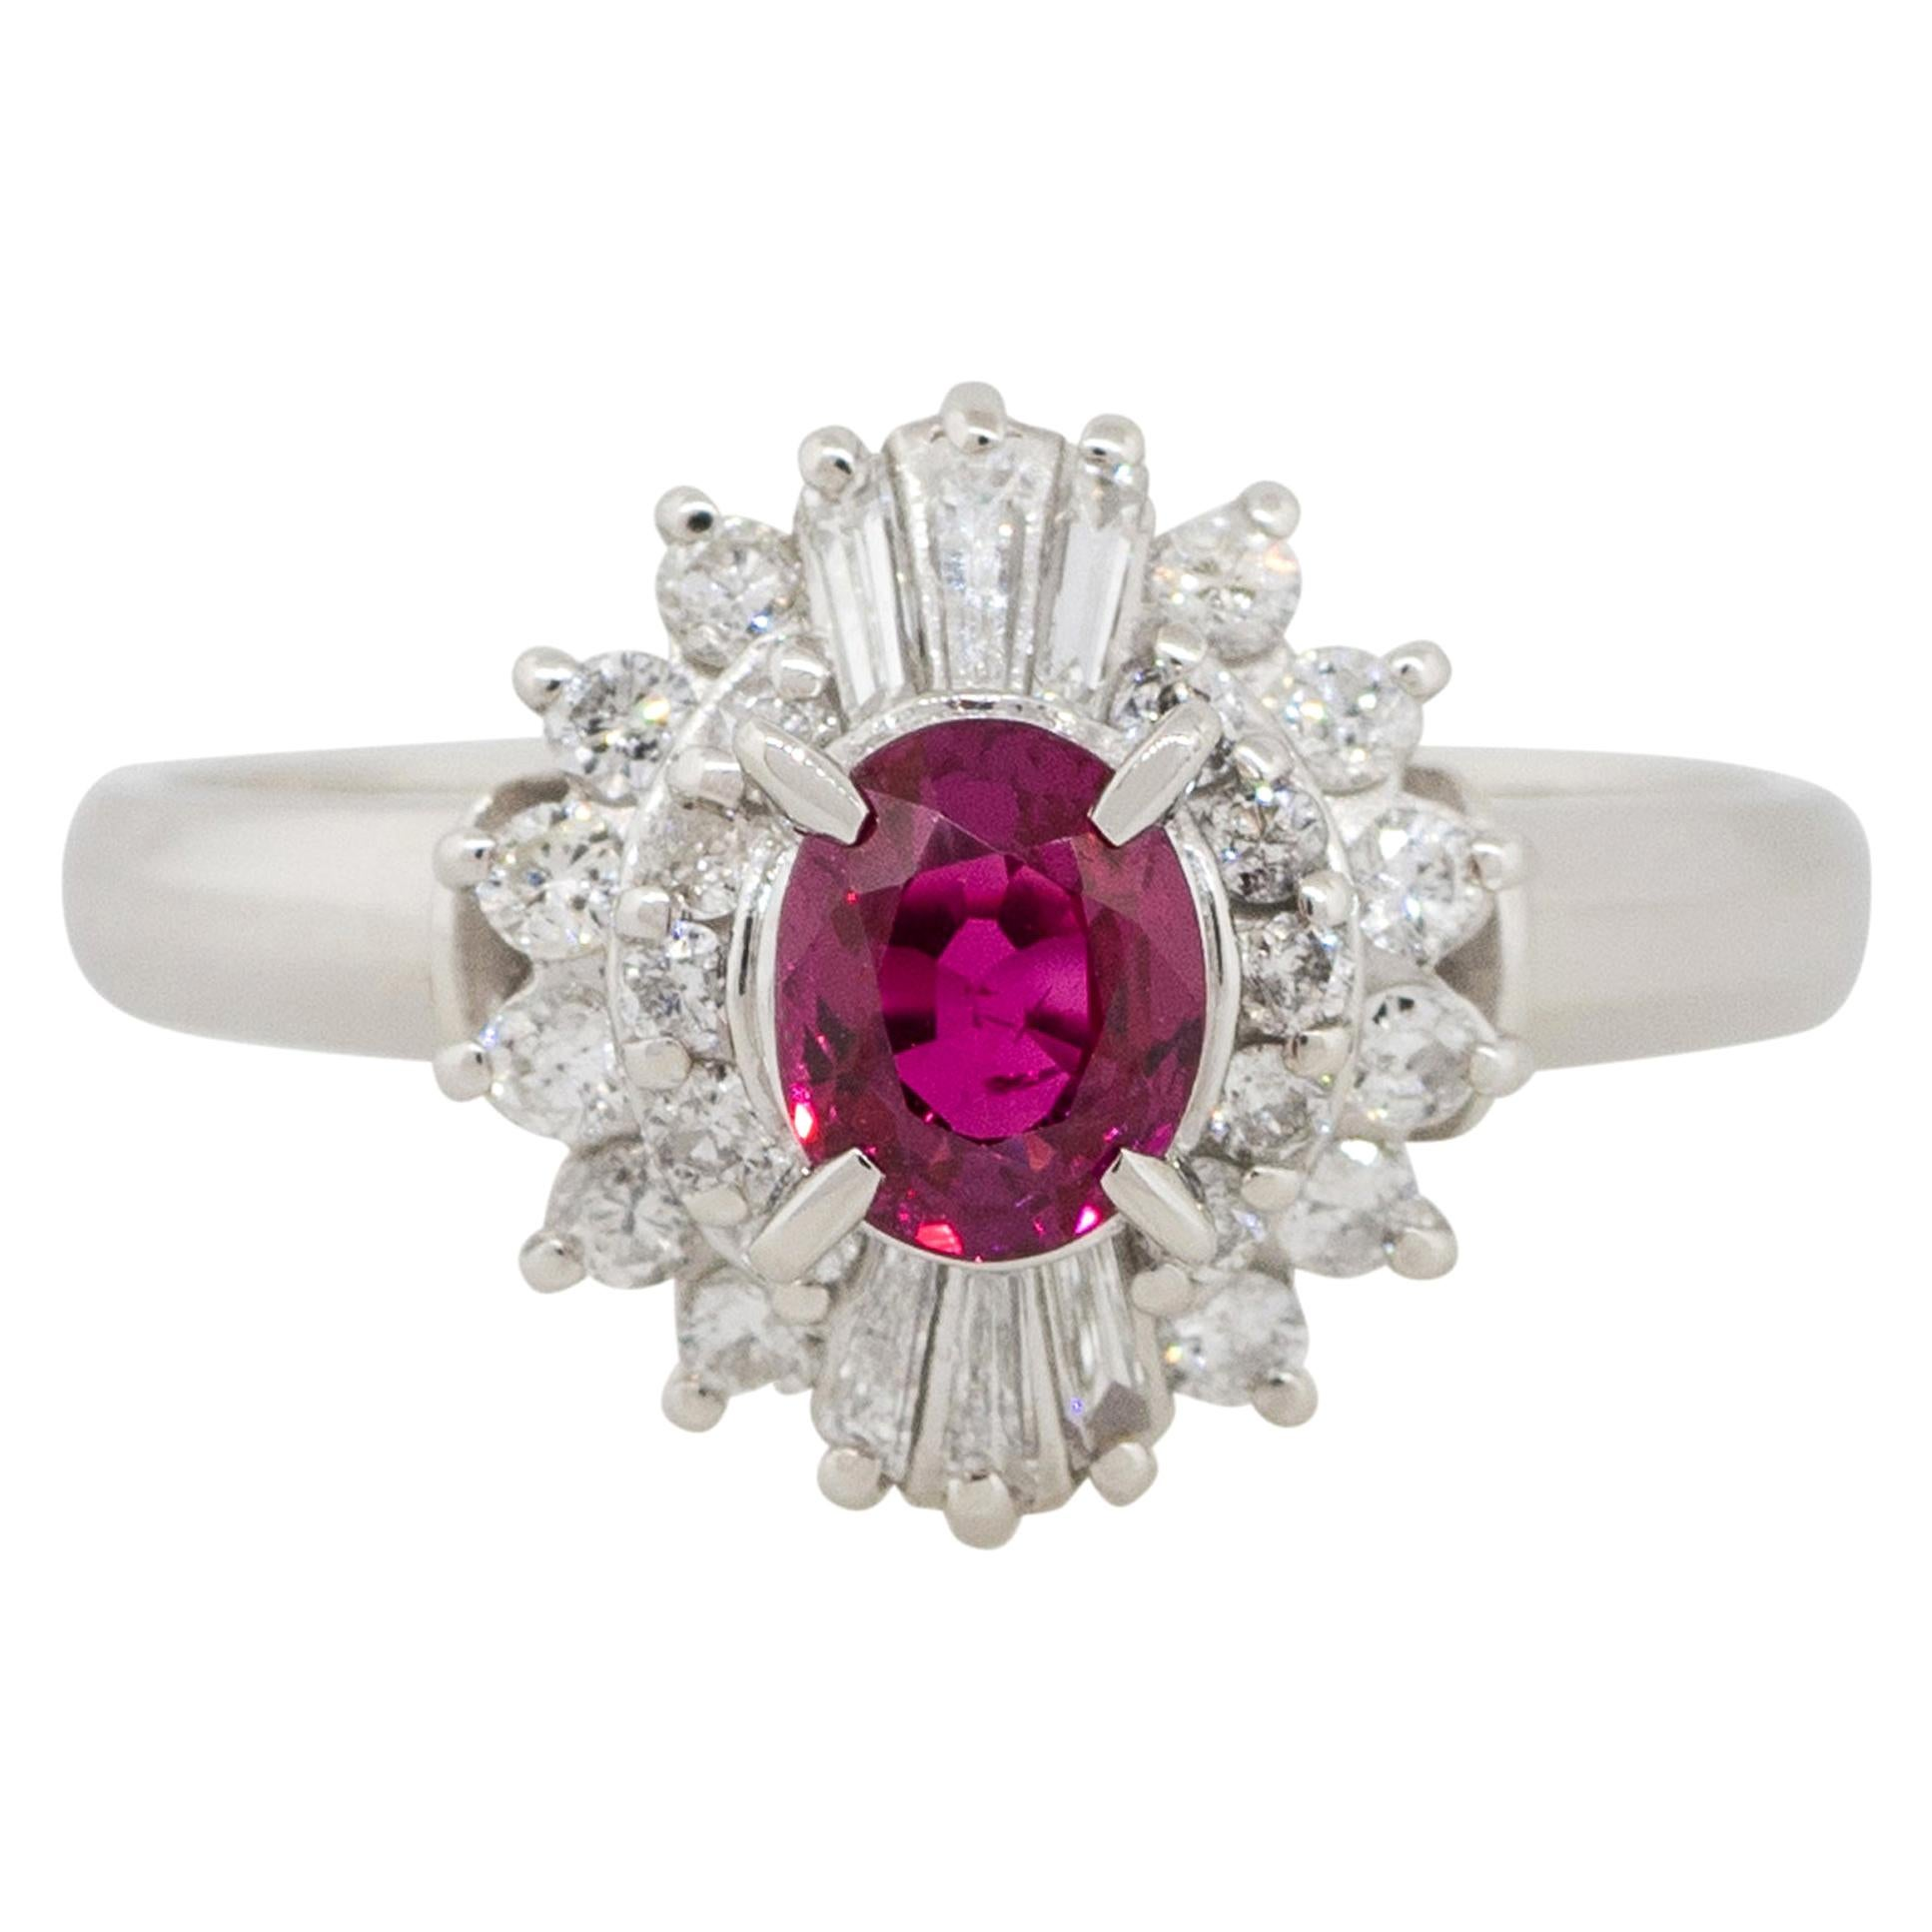 0.72 Carat Oval Ruby Center Diamond Cocktail Ring Platinum in Stock